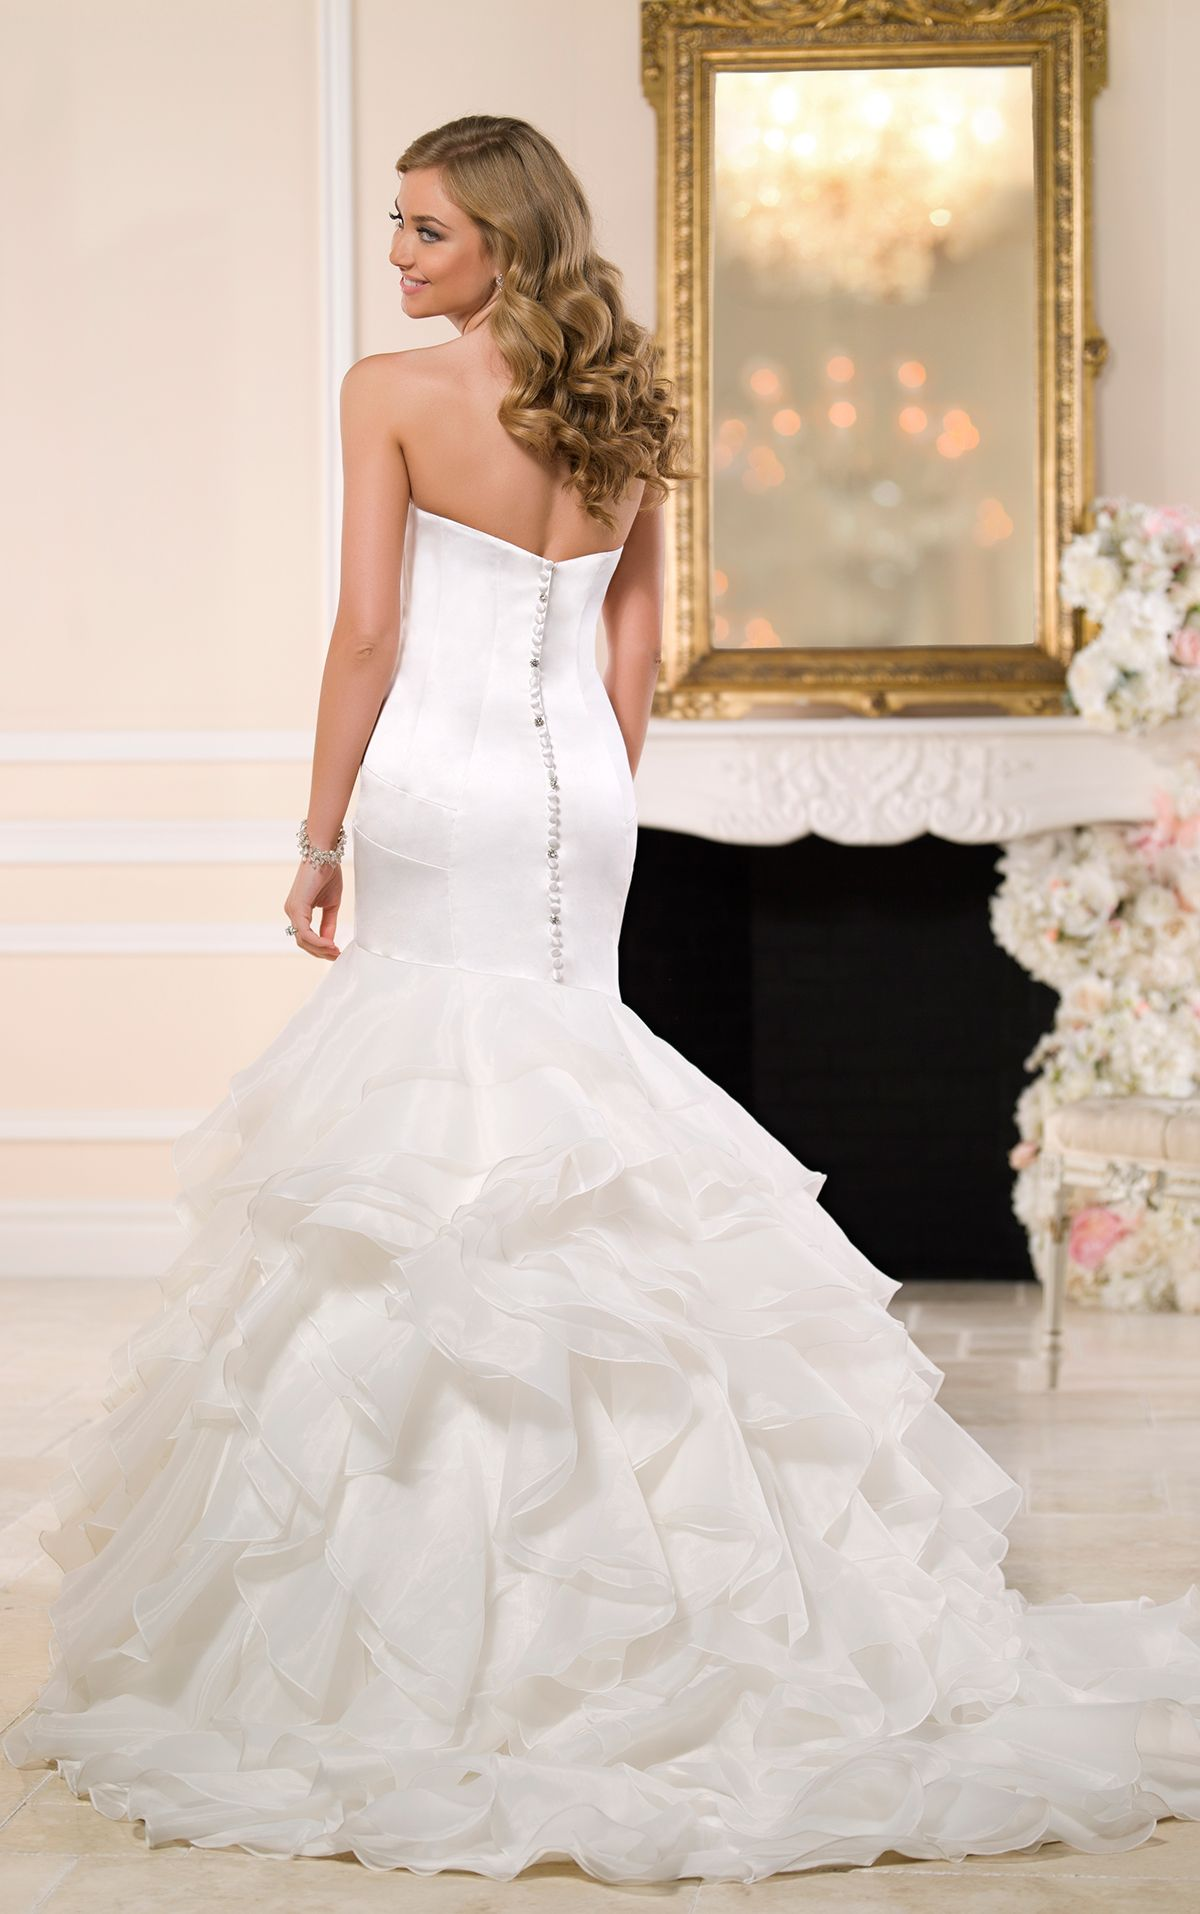 Read more about this satin fit-and-flare wedding dress featuring layers of Organza on the skirt and court train with a sweetheart neckline and modern fitted bodice.